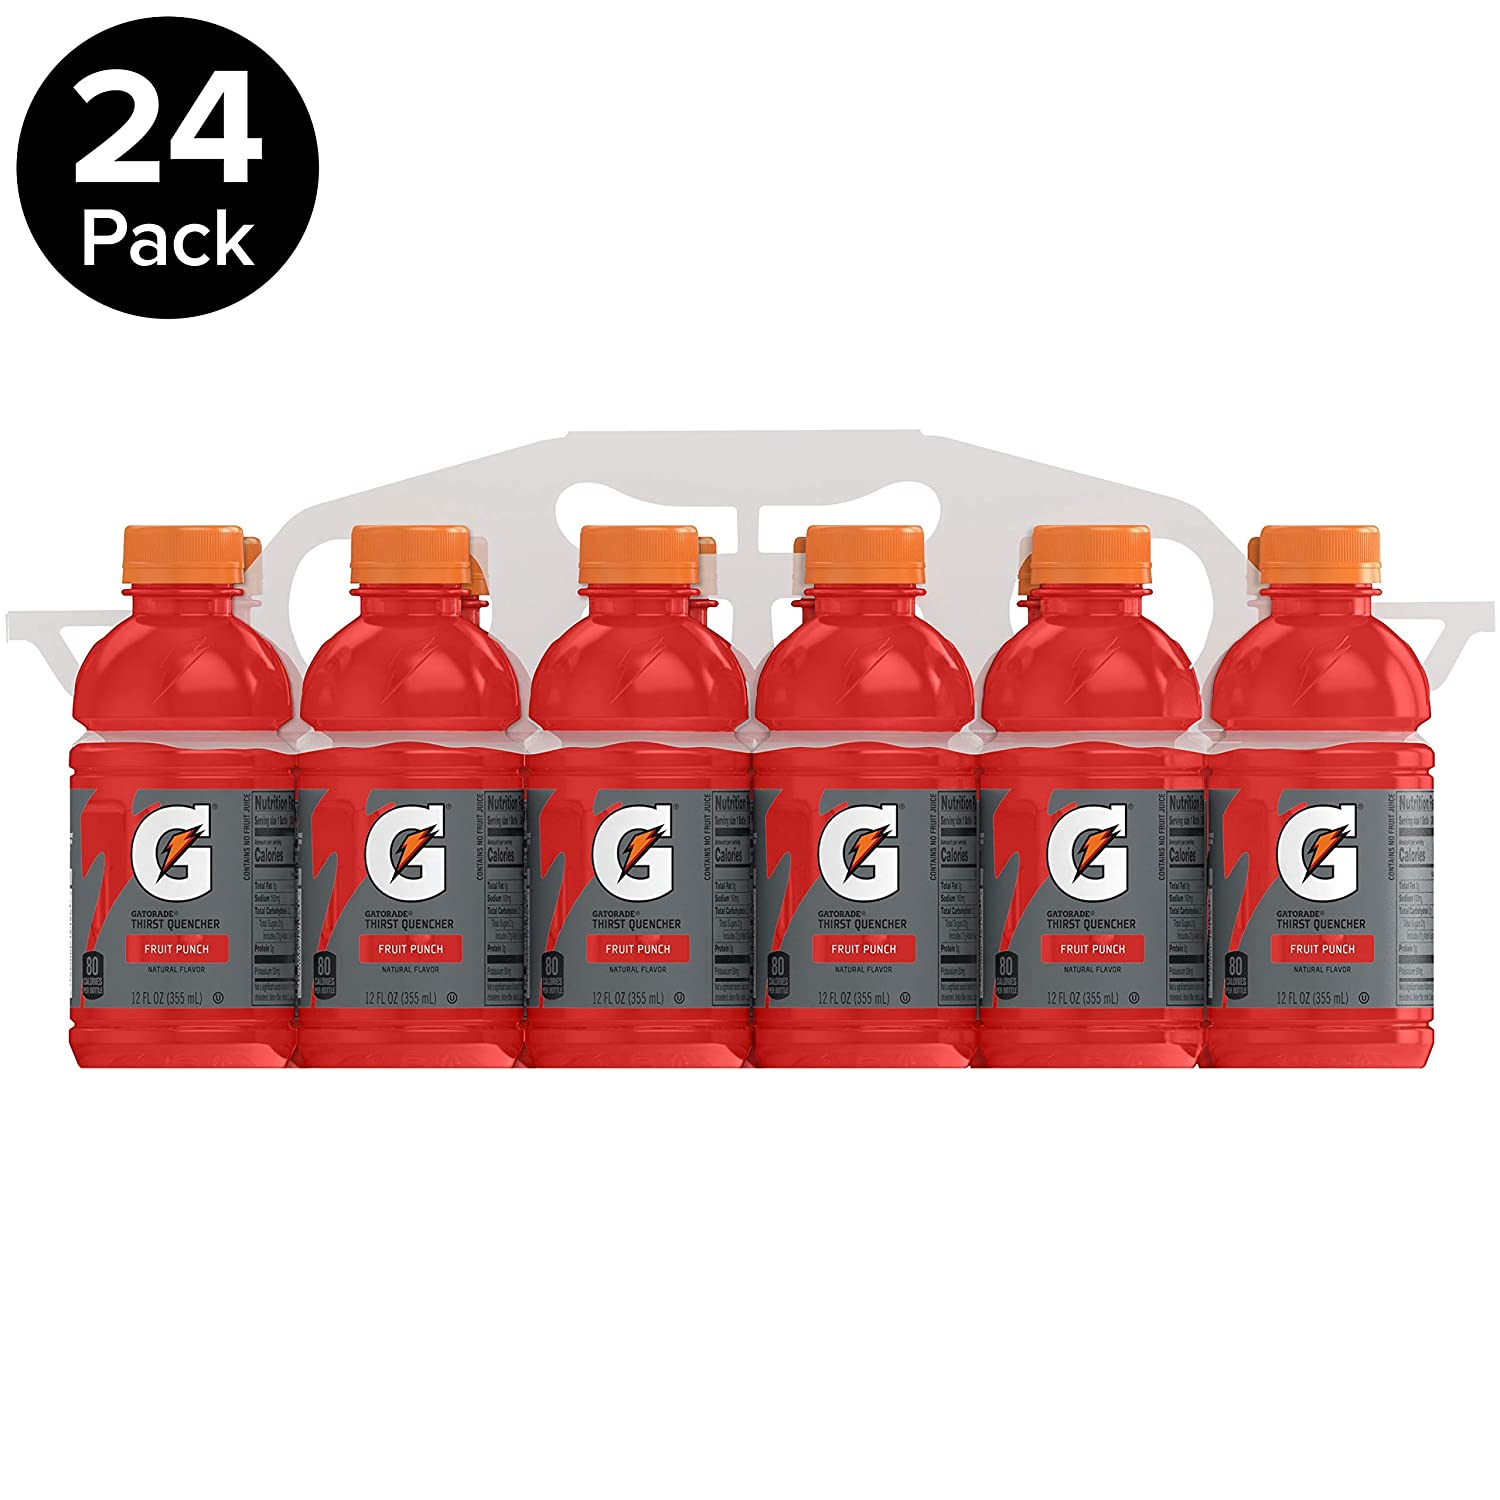 Gatorade Thirst Quencher, Fruit Punch, 12 Ounce Bottles (Pack of 24)